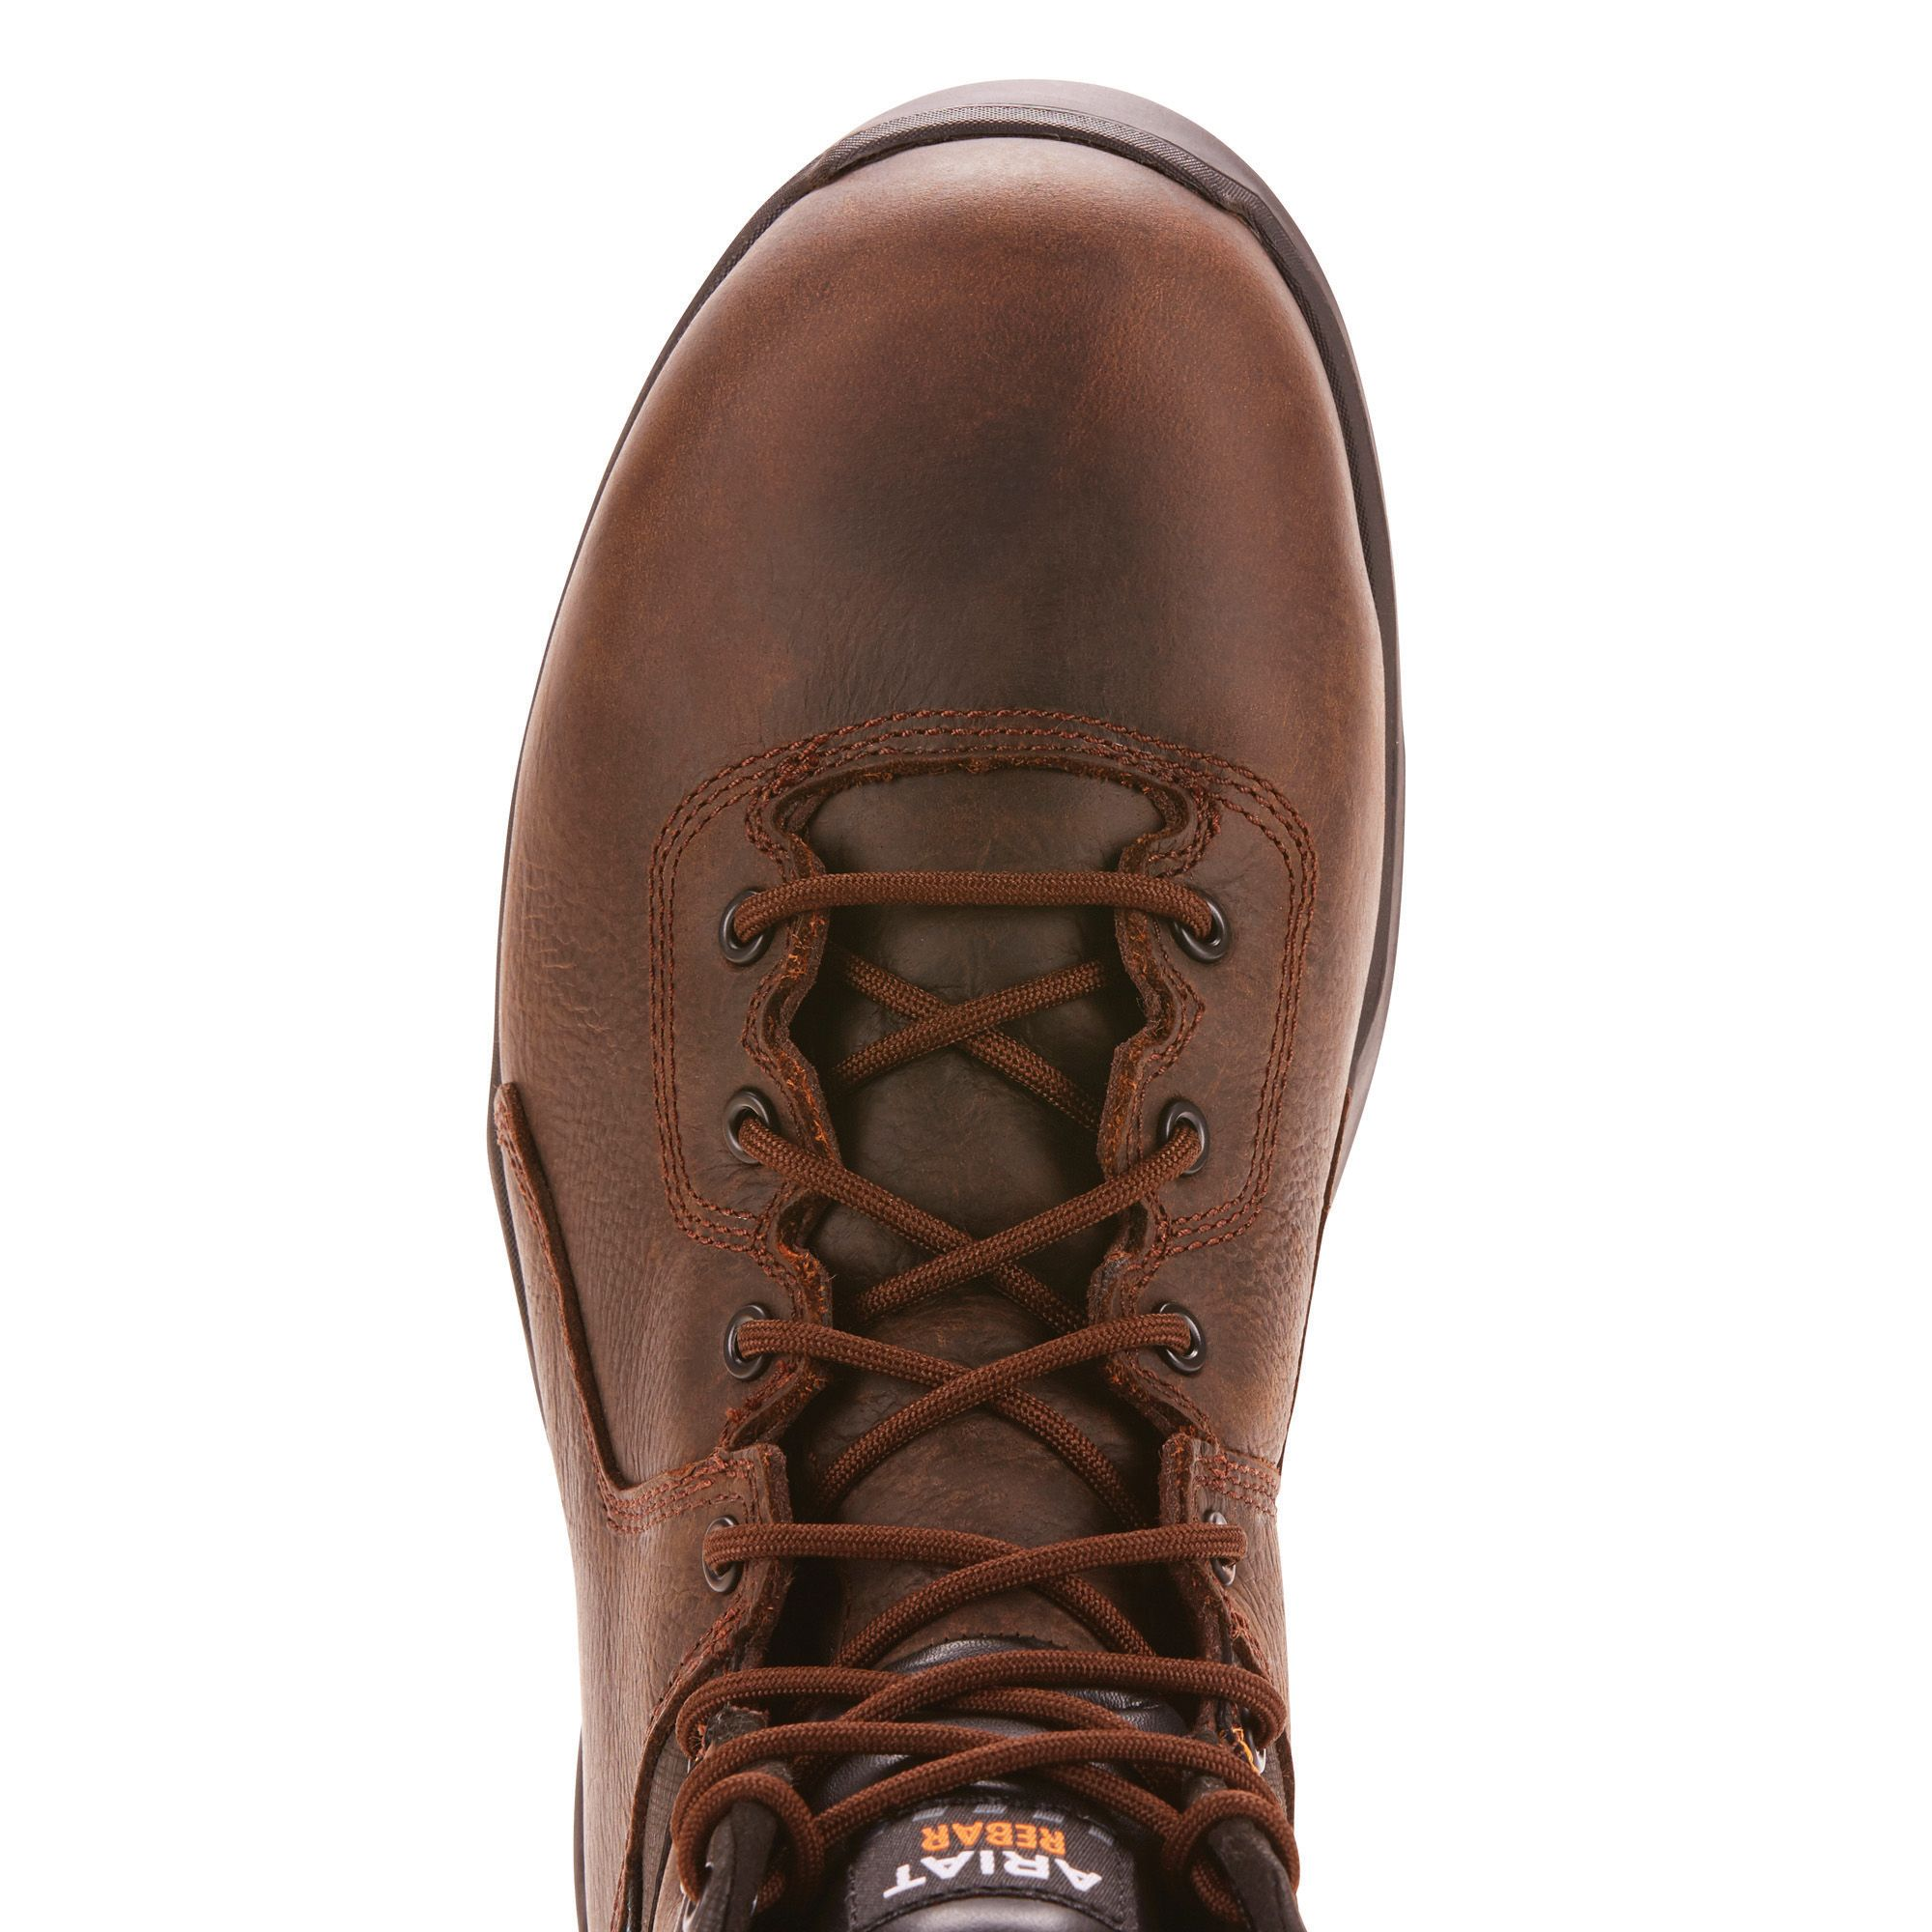 Rebar Flex Protect 6 Waterproof Carbon Toe Work Boot Dark Brown Leather Brown Leather Boots